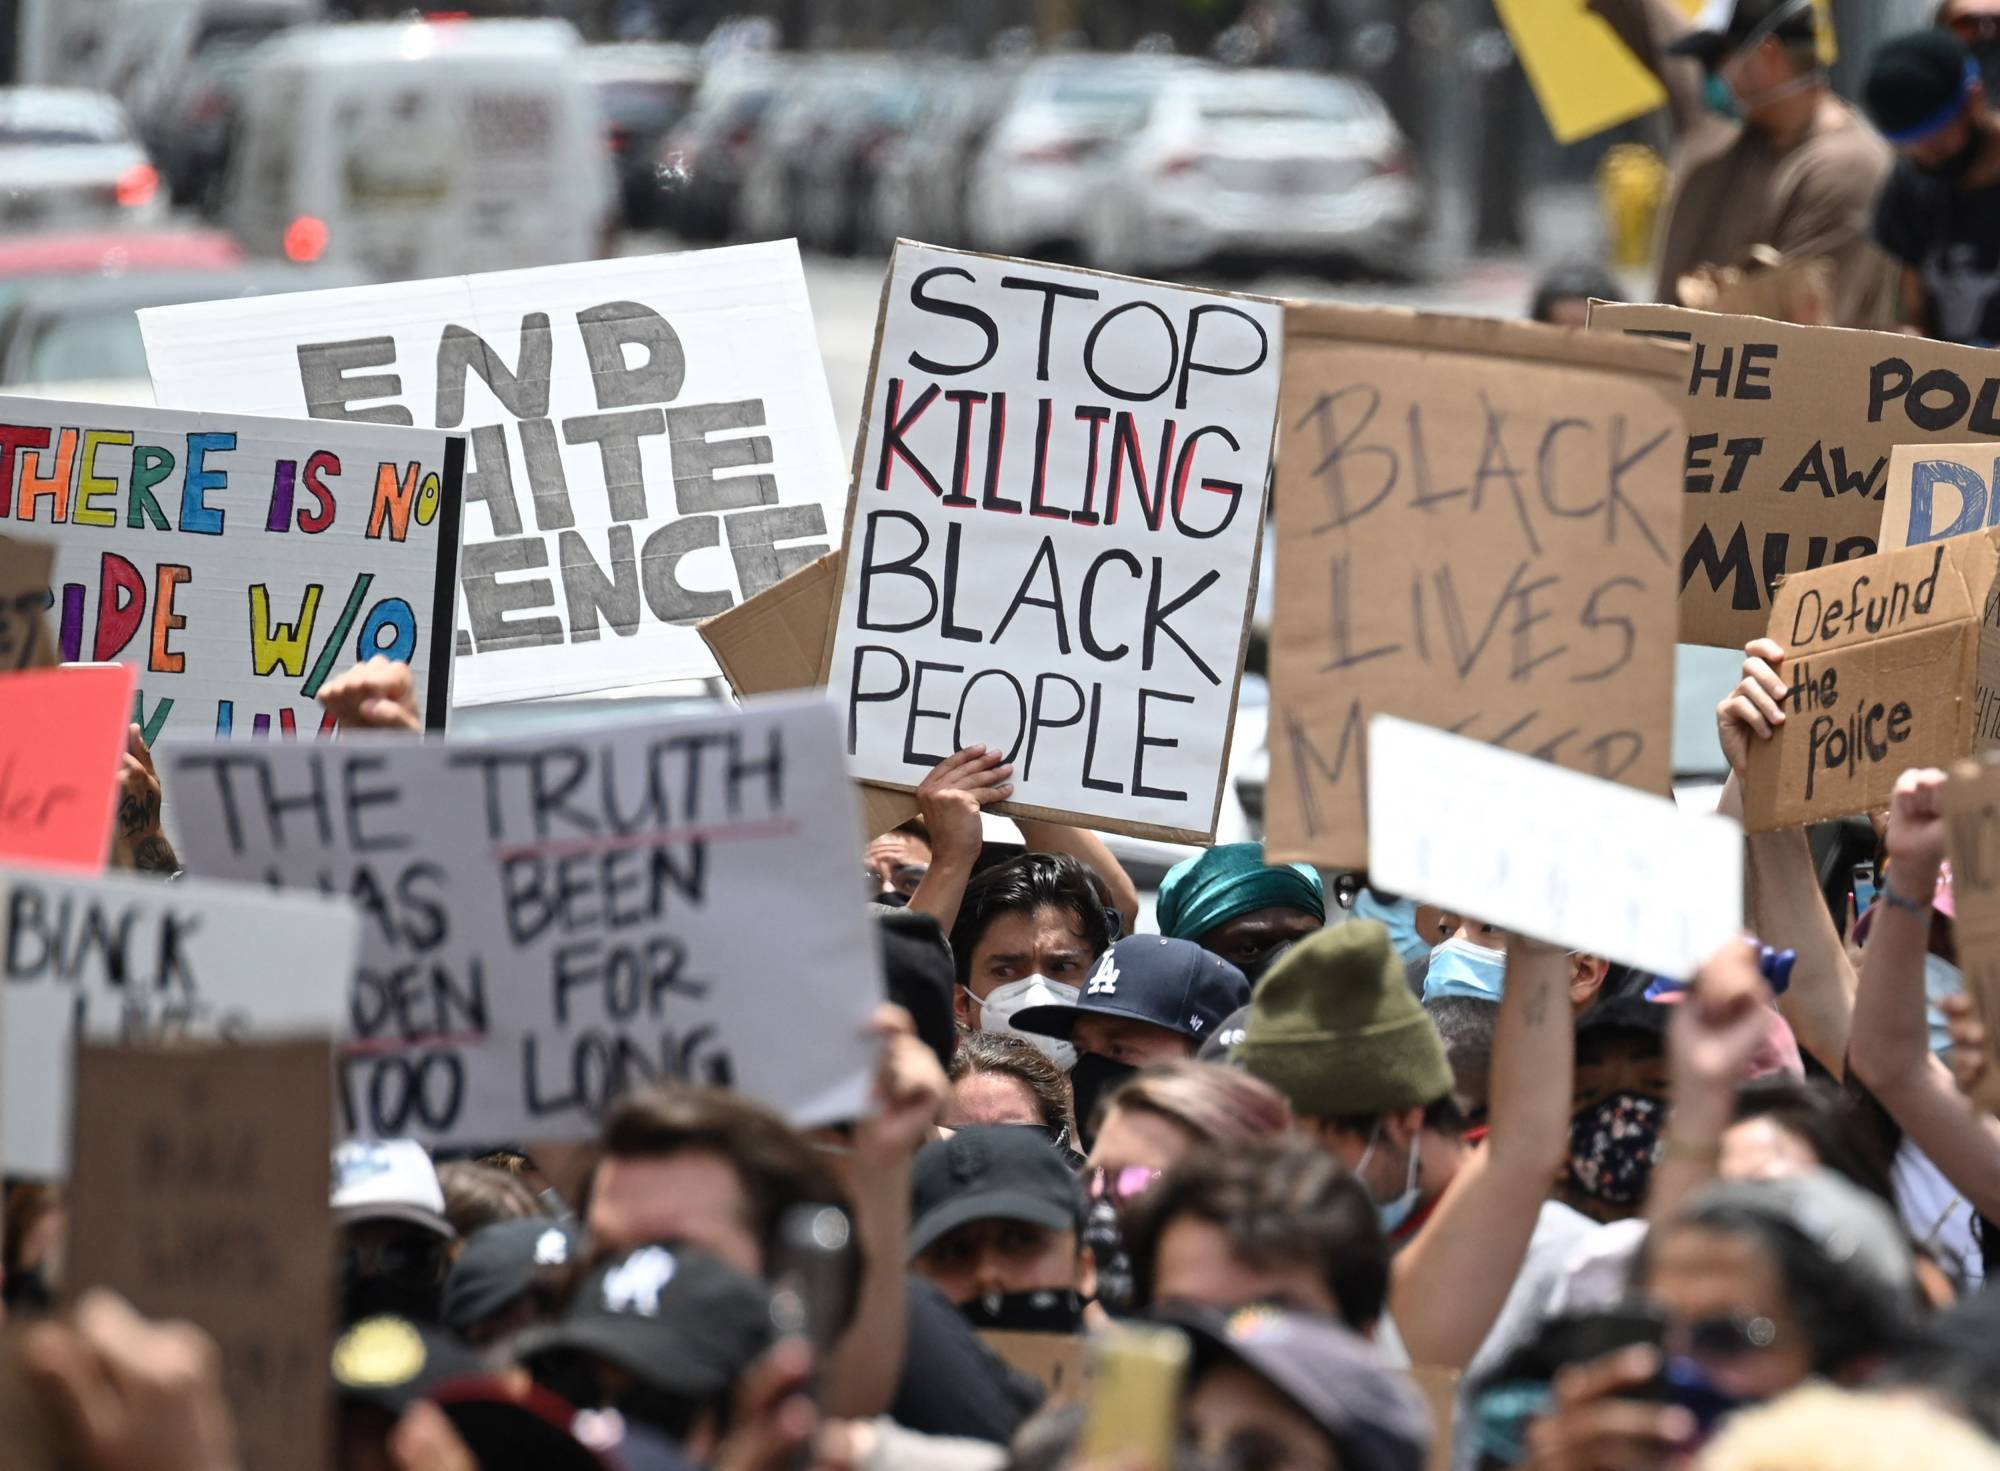 Demonstrators march through the streets of Hollywood, California, to protest the death of George Floyd at the hands of police last June.   AFP-JIJI